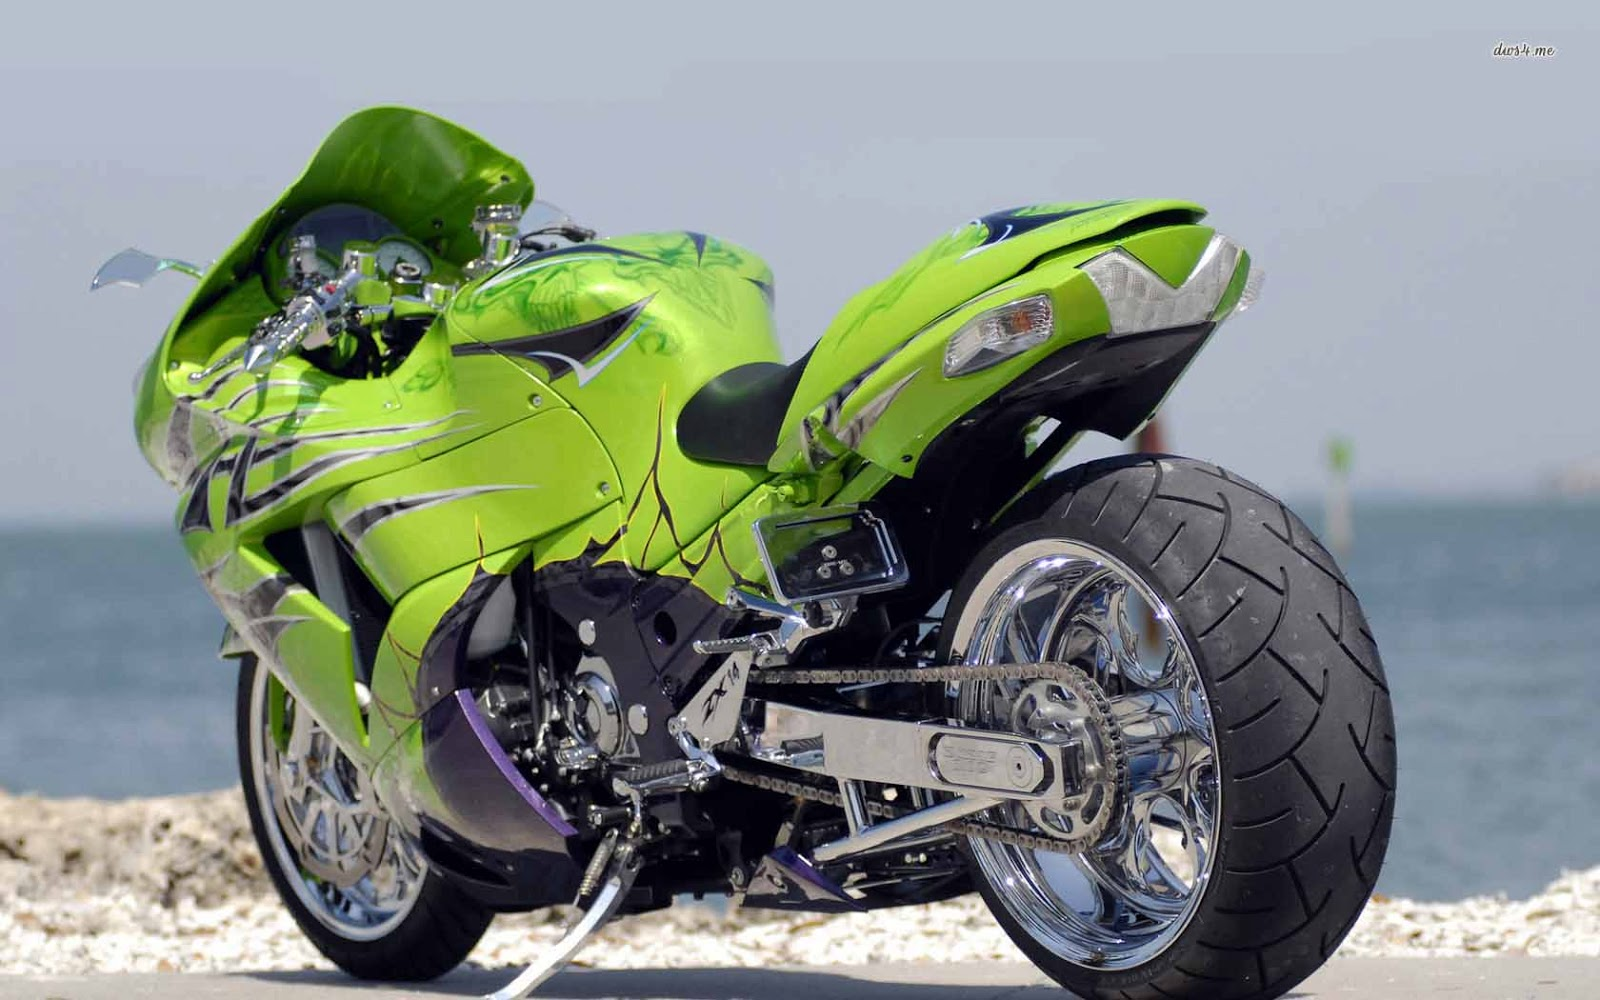 Kawasaki Ninja 300 2013 - wallpaper world